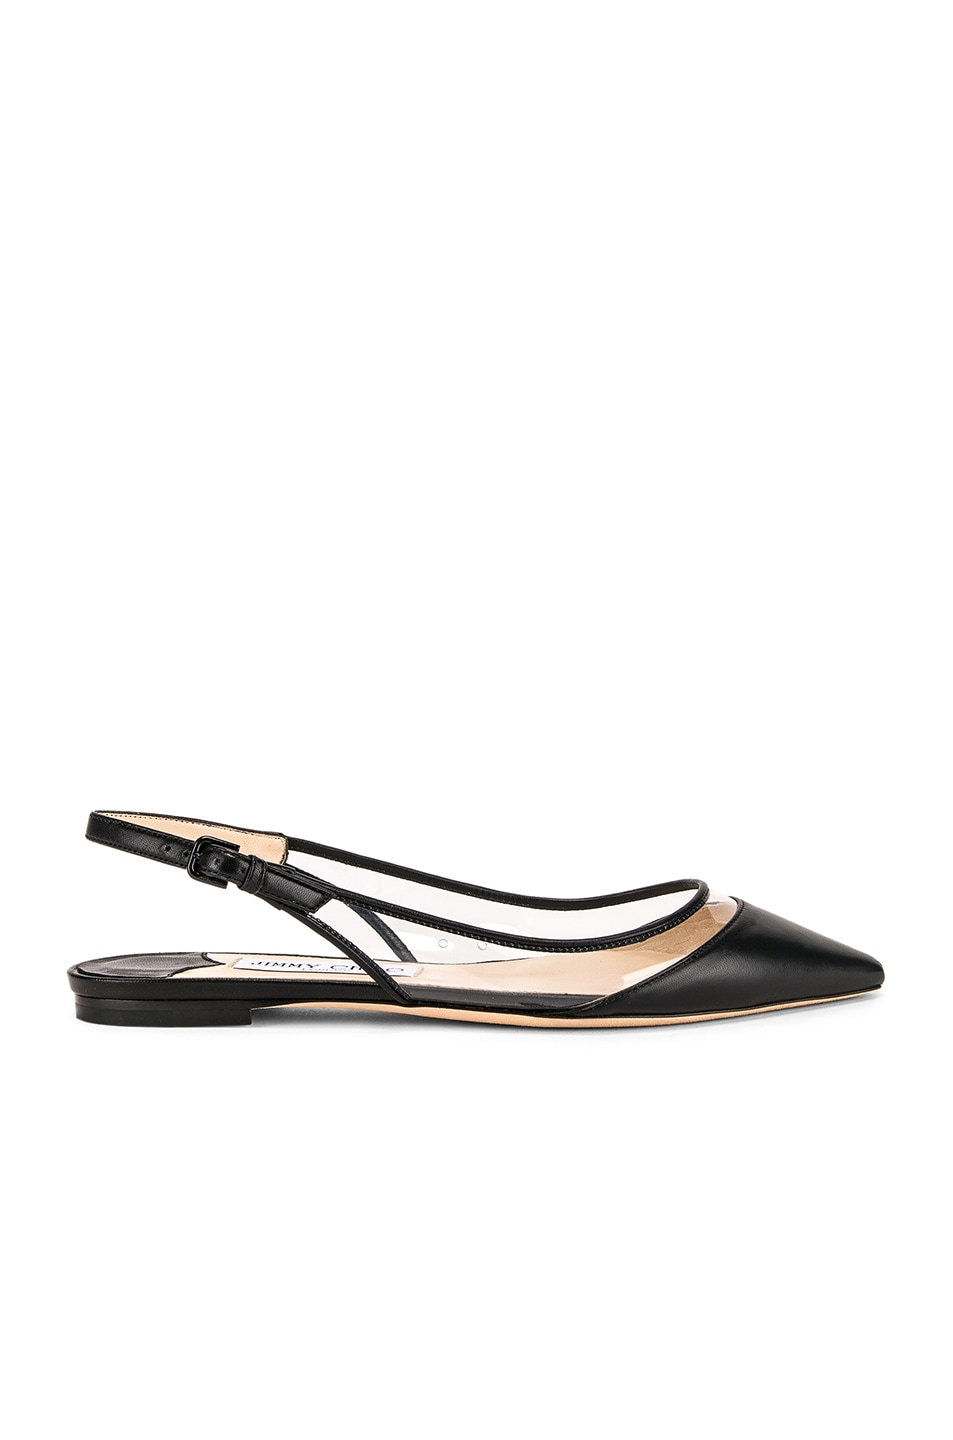 Image 1 of Jimmy Choo Erin Leather Plexi Flat in Black & PVC